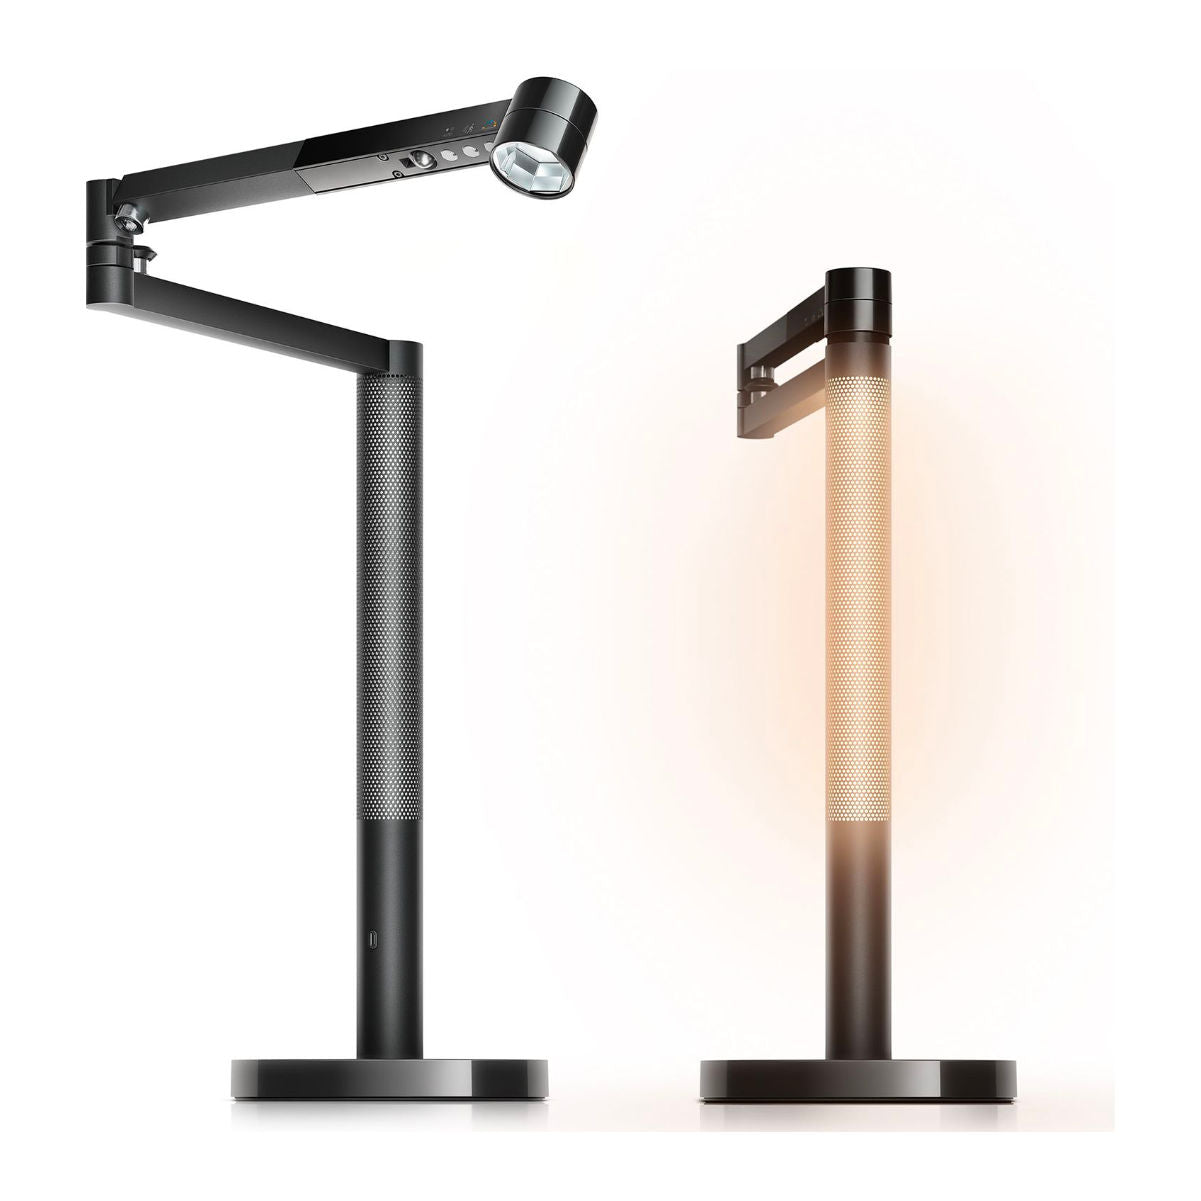 Dyson Lightcycle Morph desk lamp